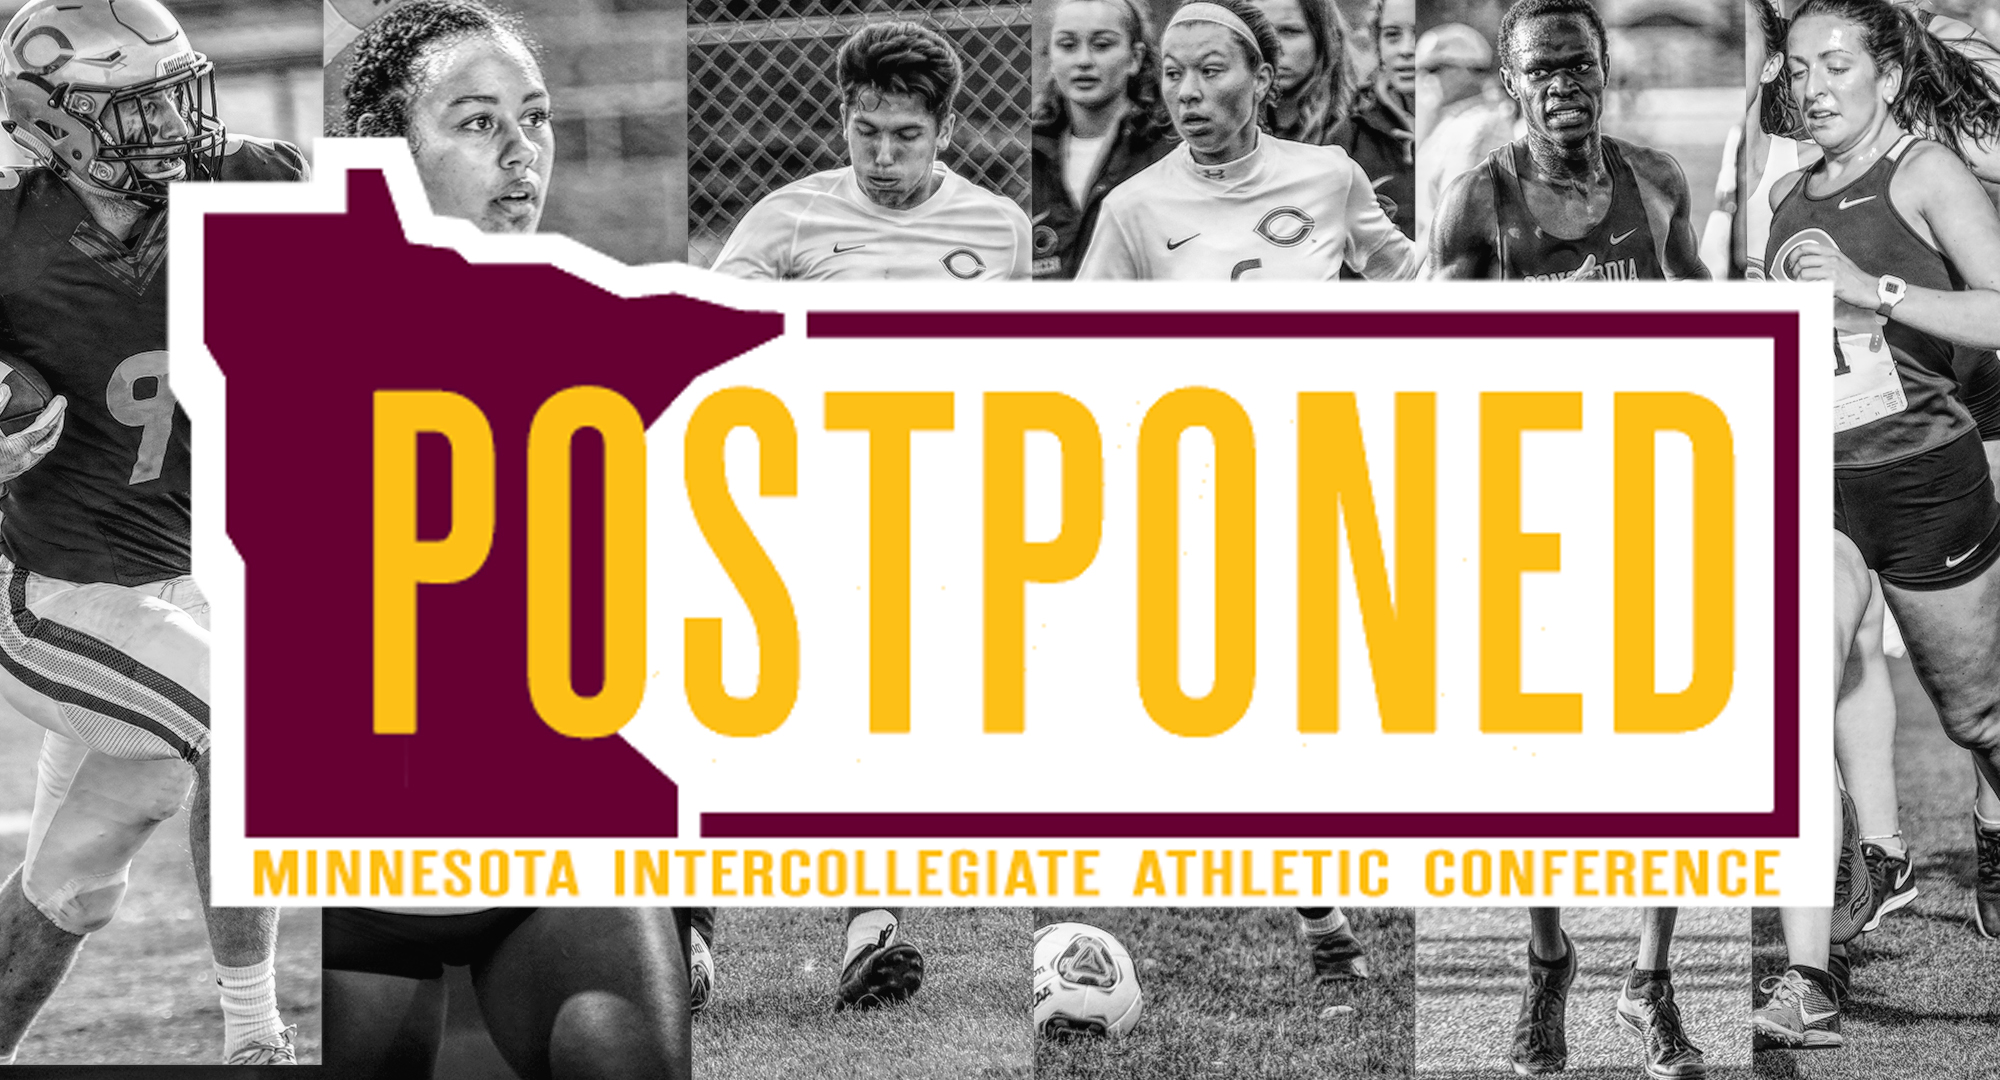 The MIAC office announced today that football, volleyball, men's soccer, women's soccer, men's cross country and women's cross country have been postponed until the spring season.